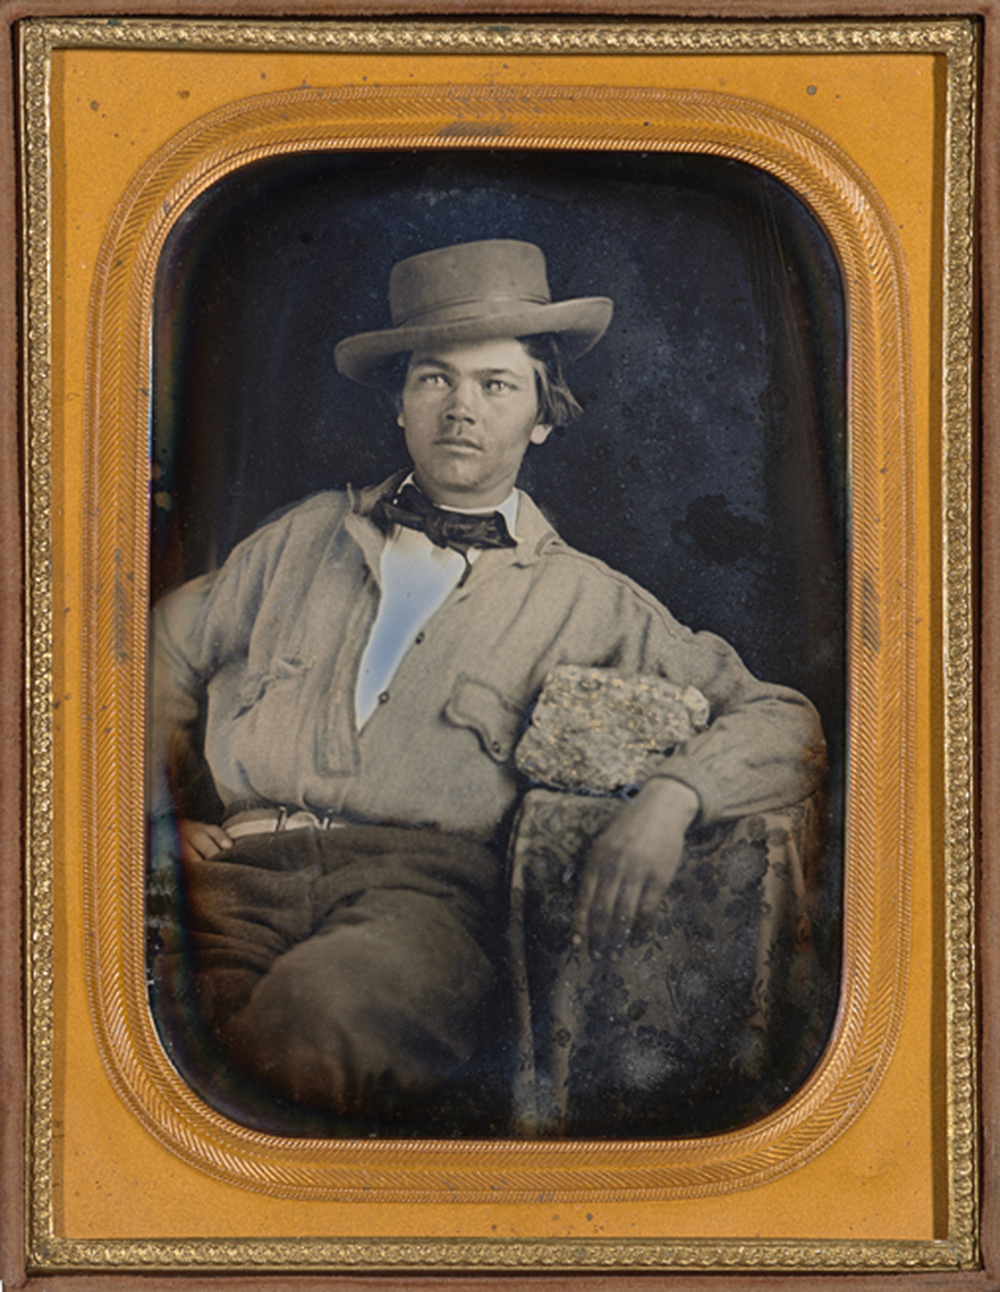 California gold miner with gold ore, quarter-plate daguerreotype, by James M. Ford, c. 1855. The Nelson-Atkins Museum of Art.